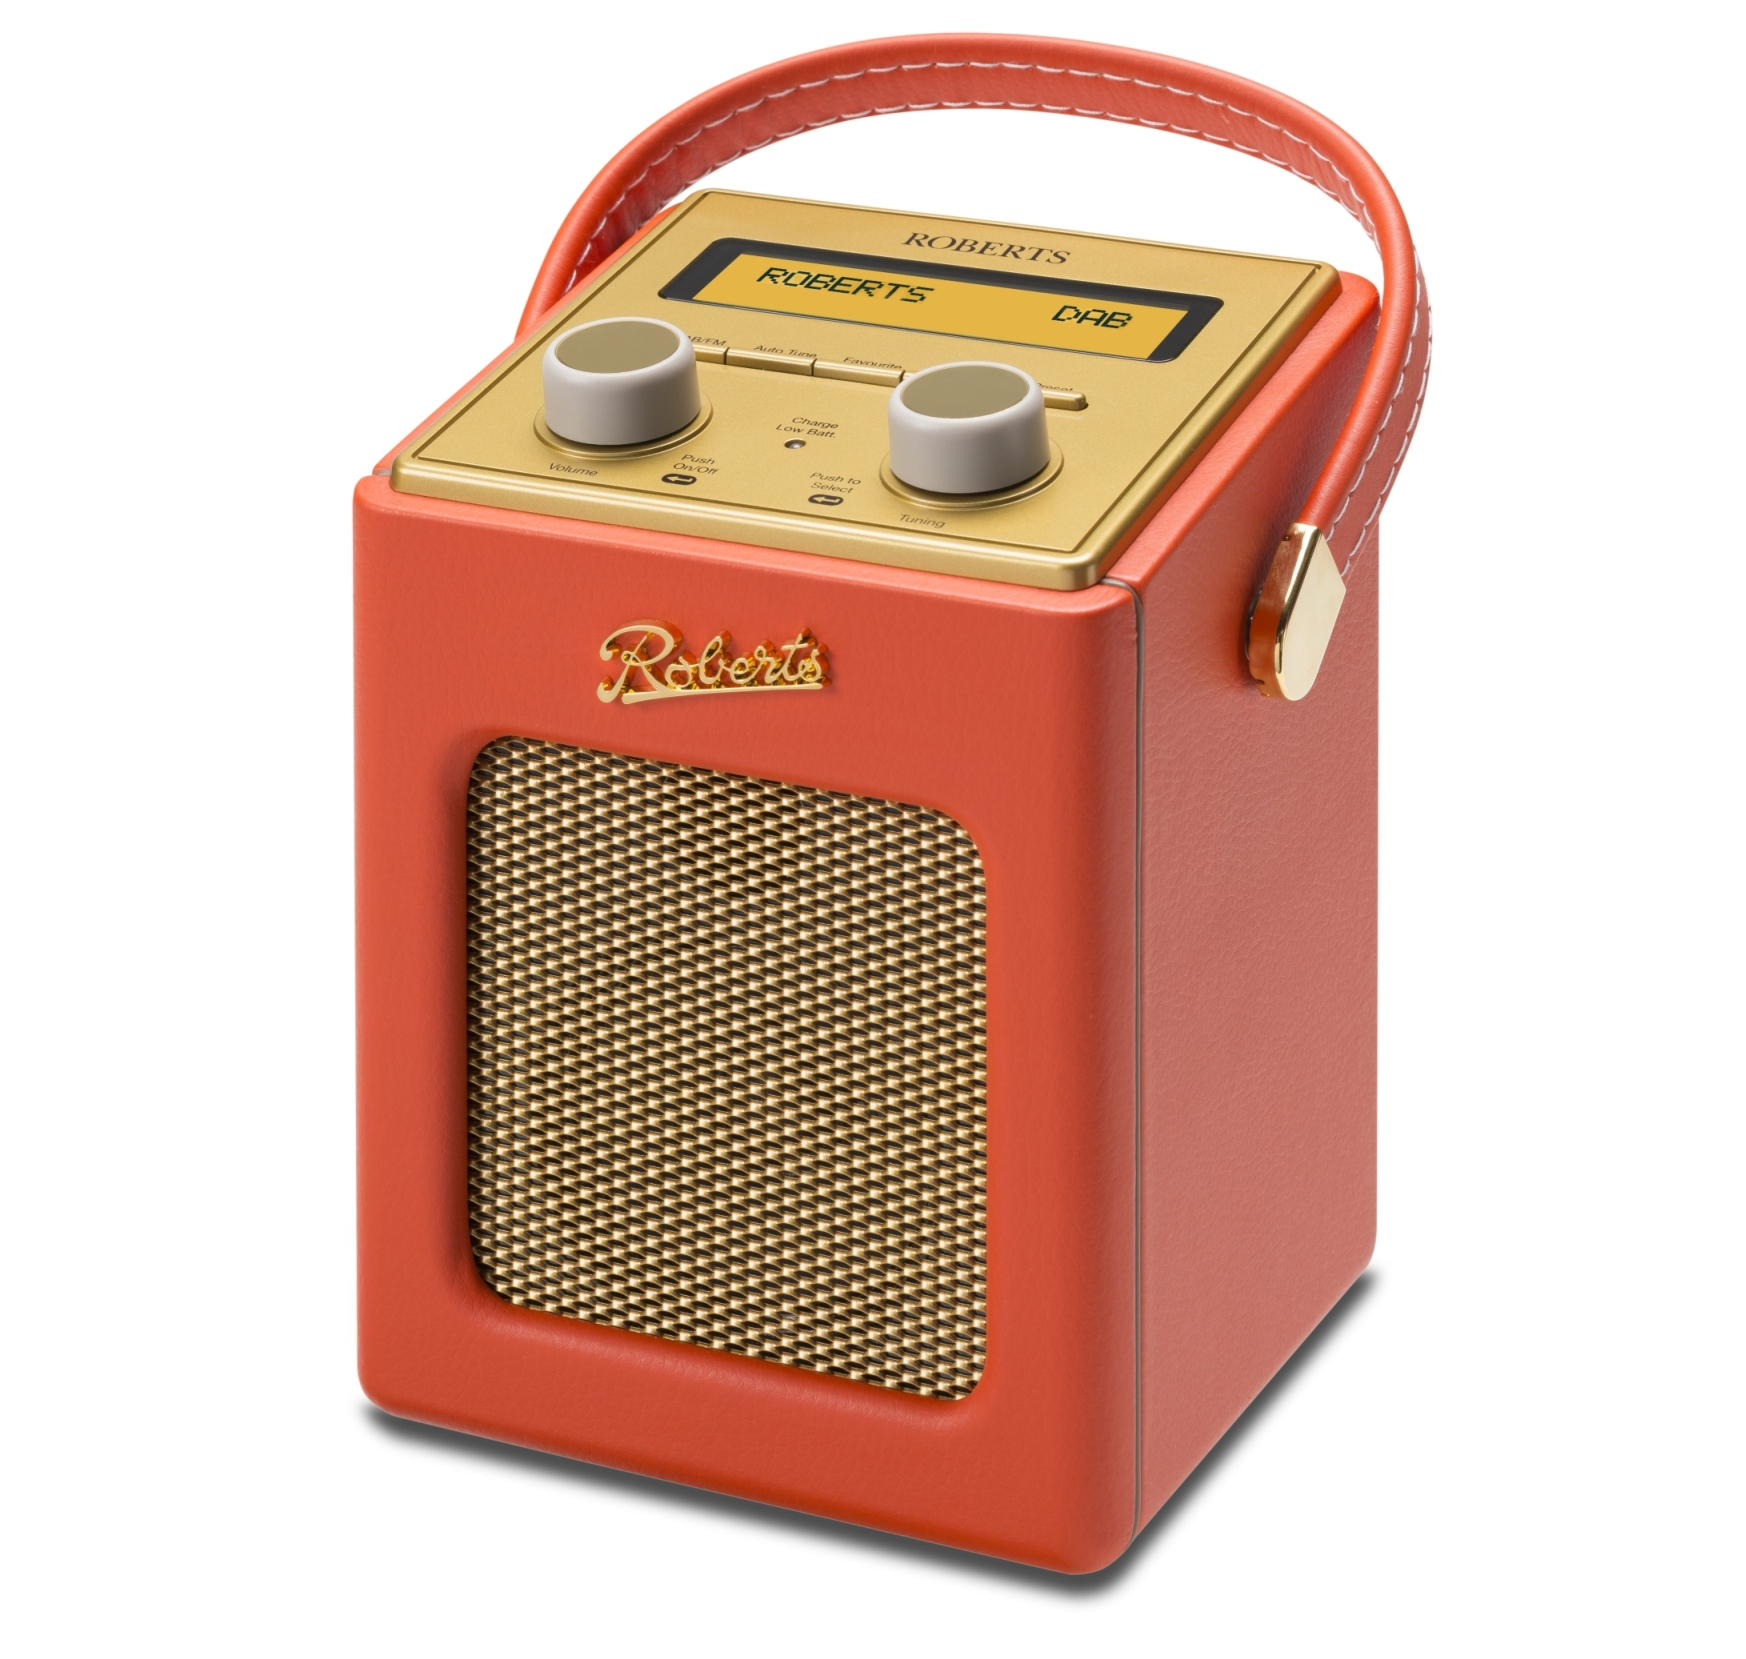 Roberts Radio Revival Mini DAB+ Radio Orange (130-313004)